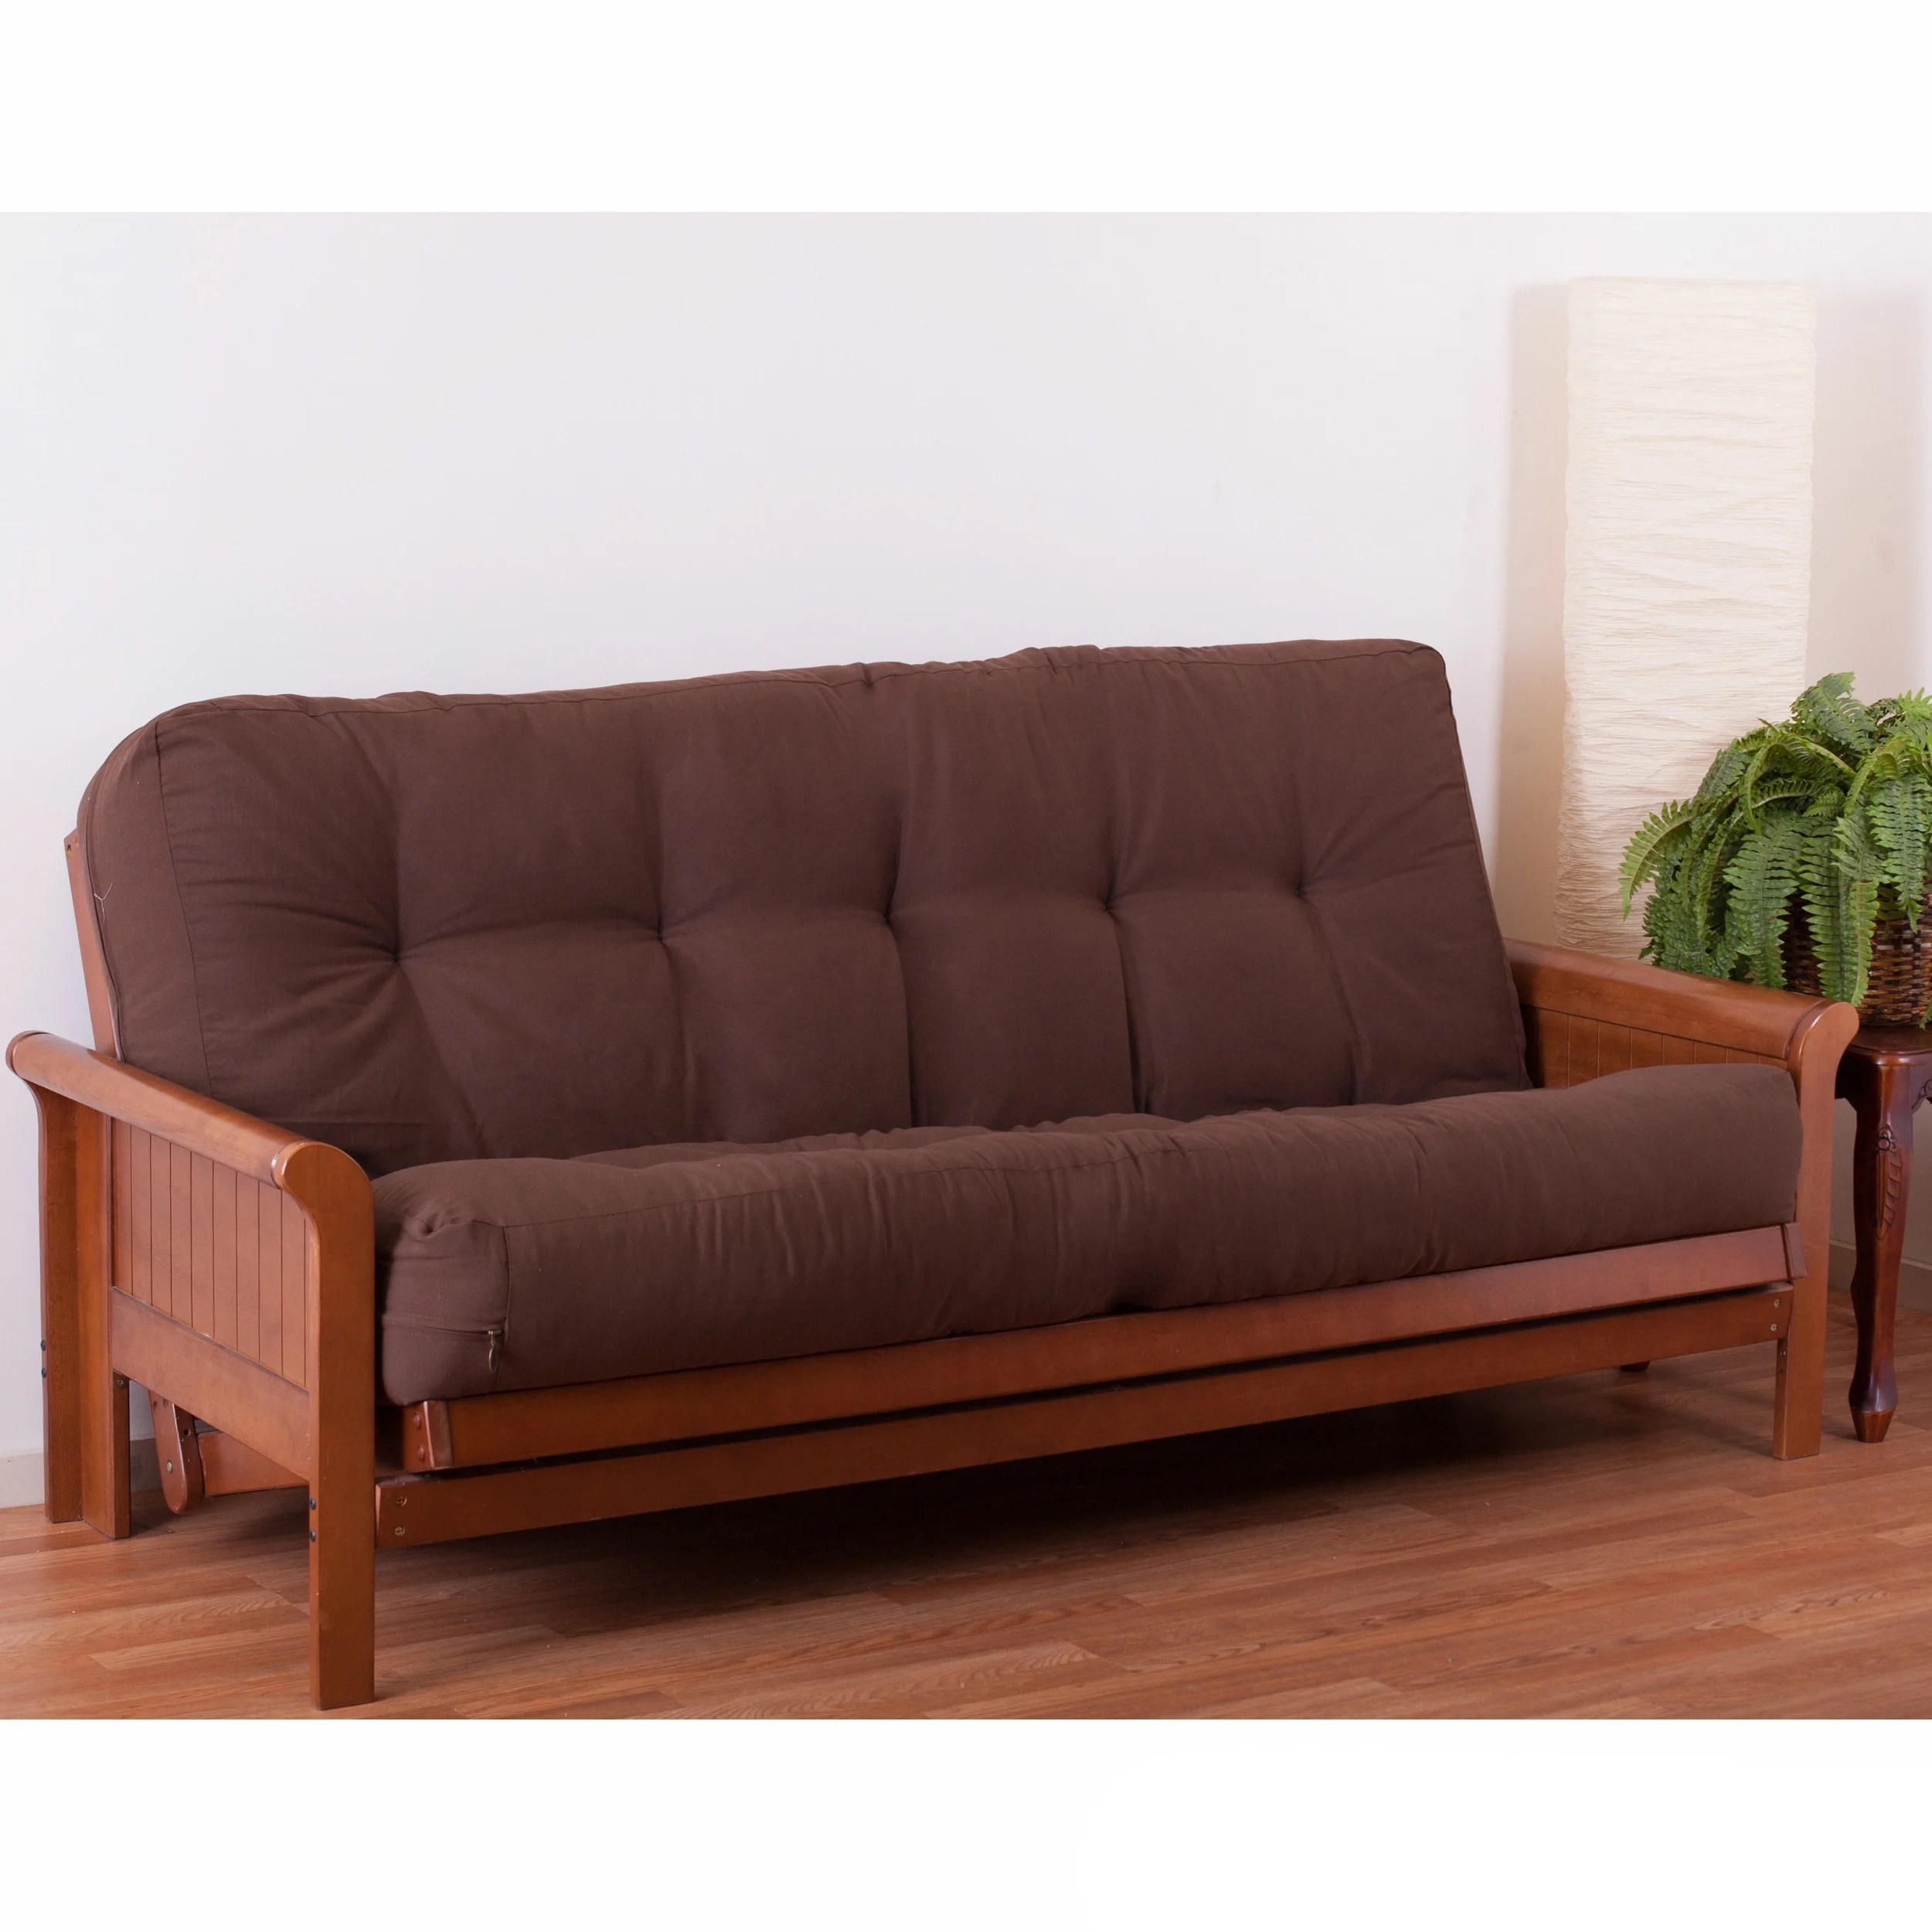 Buy Sofa Bed Online Buy Futons Online At Overstock Our Best Living Room Furniture Deals